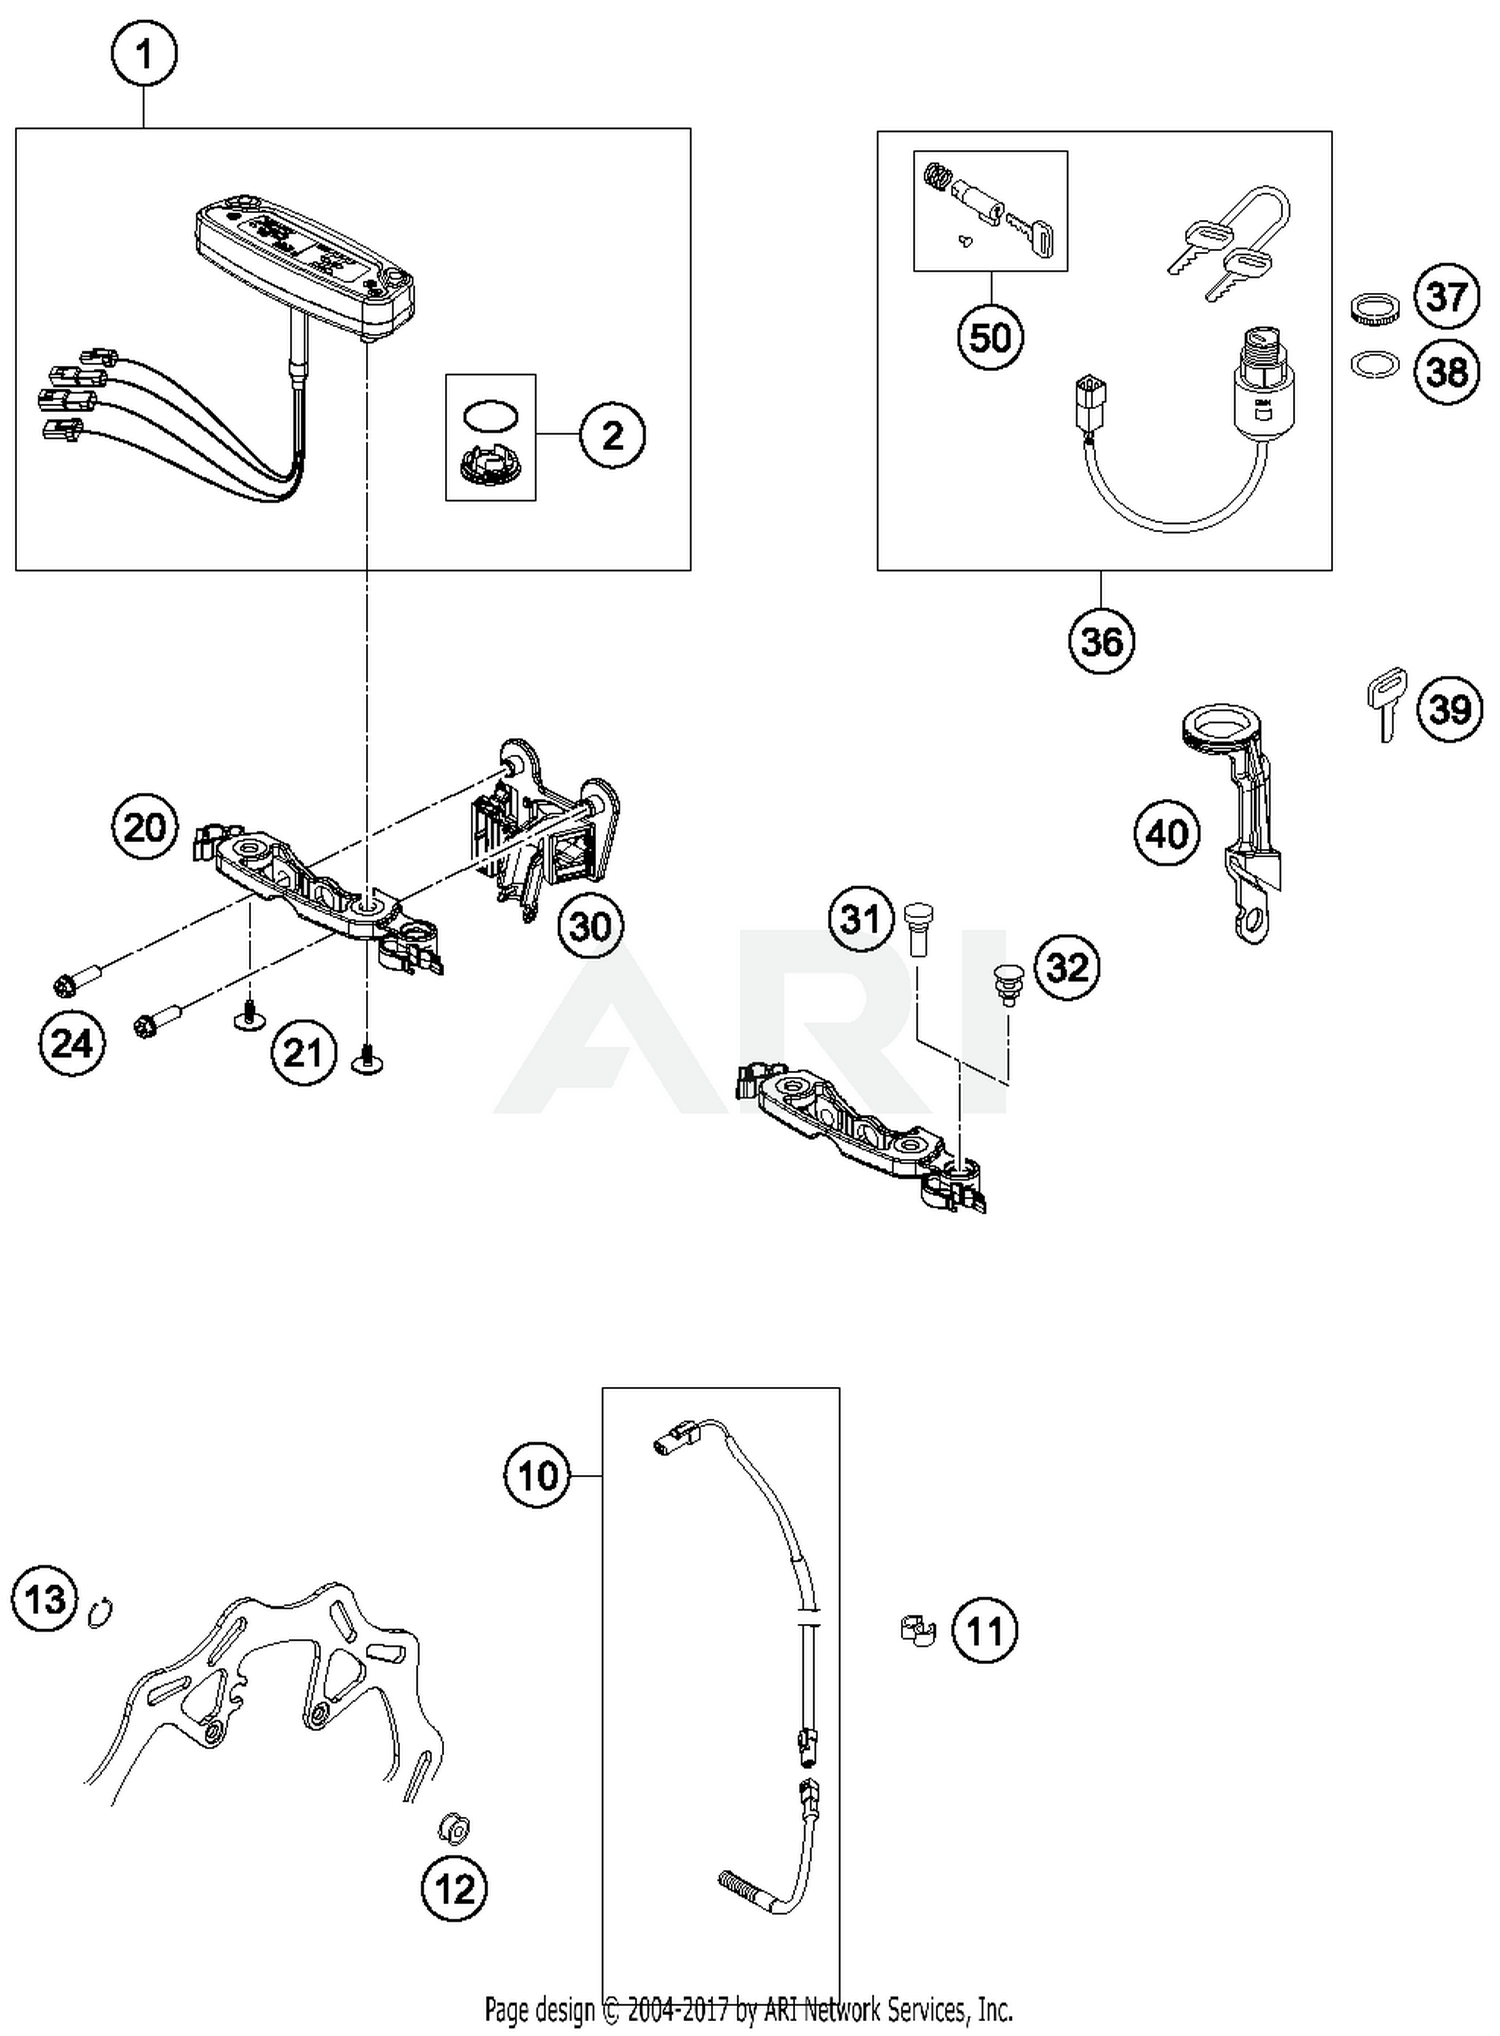 Diagram Part # 30 Quantity Required: 1. Wiring Harness